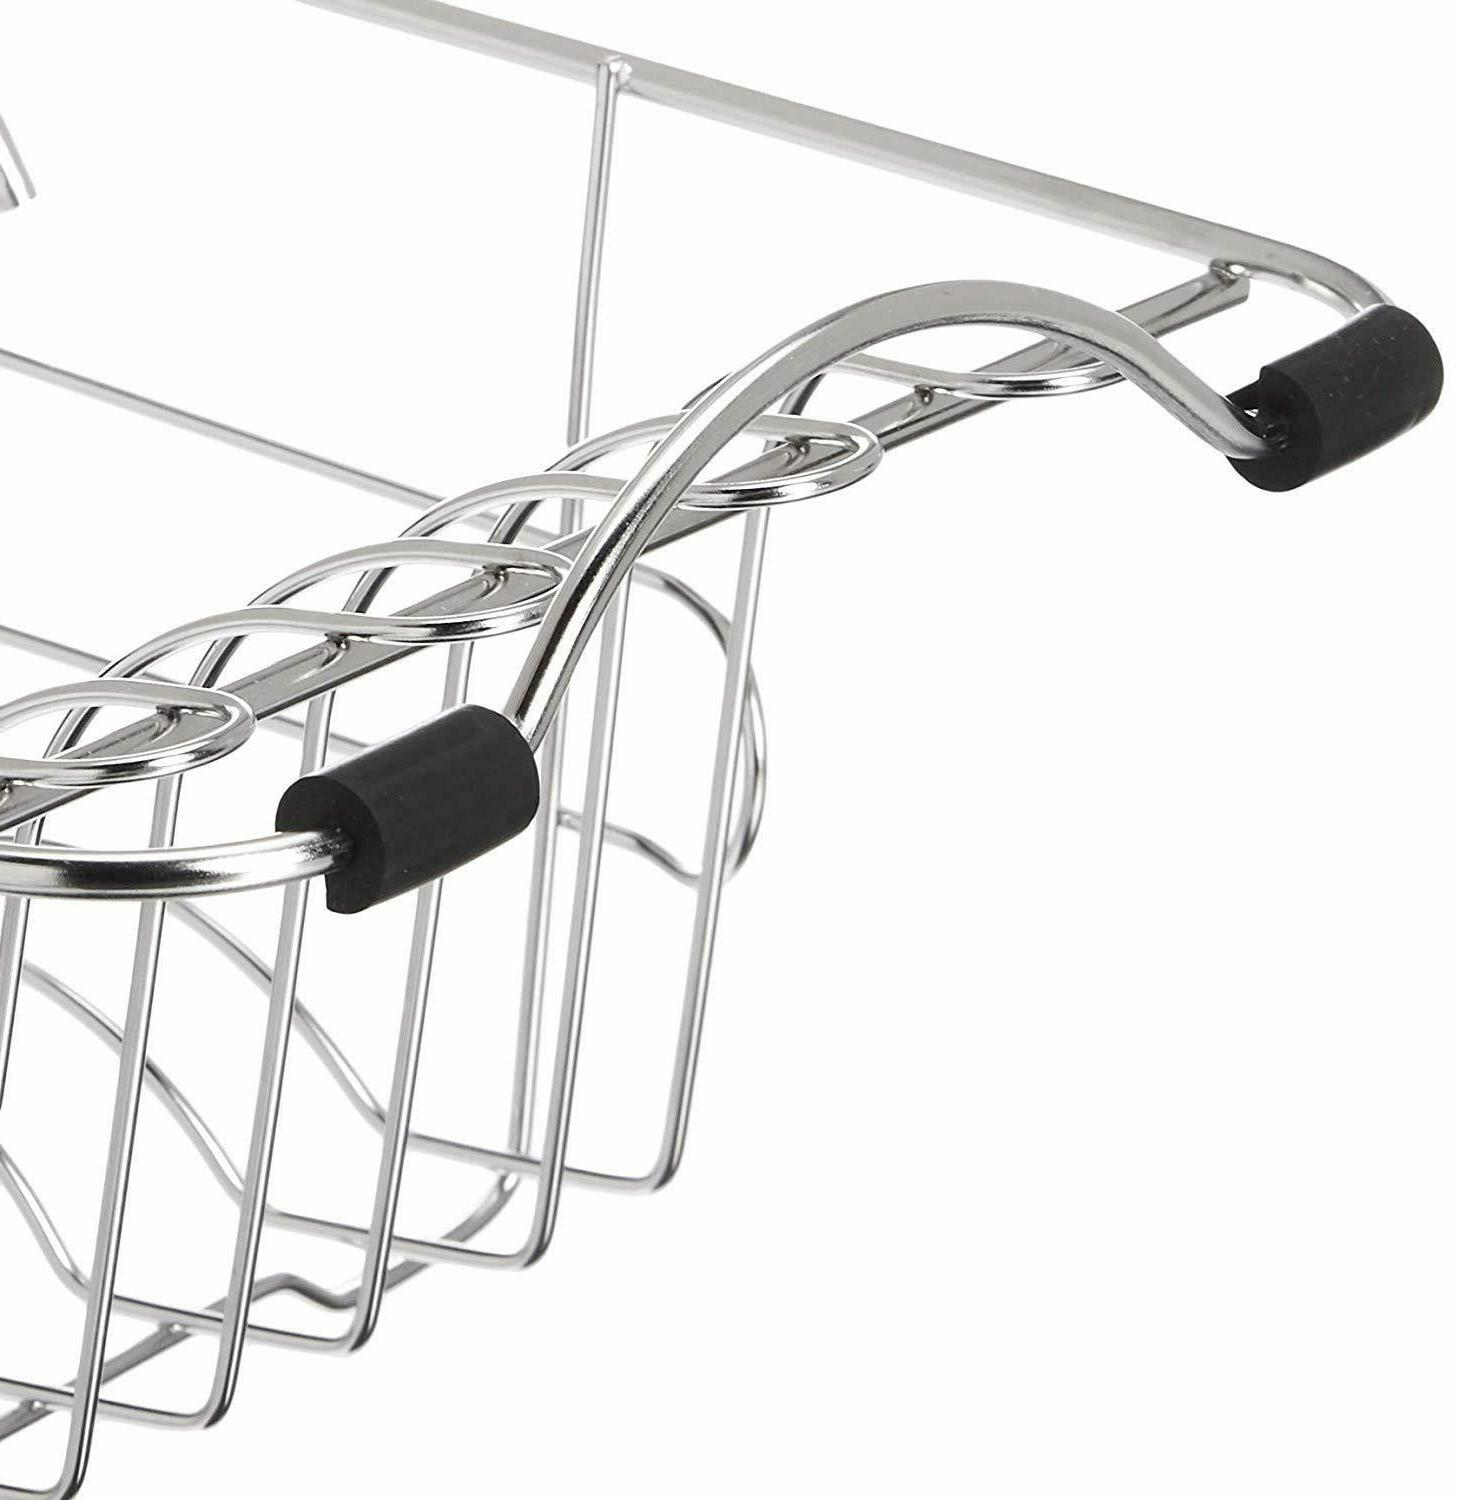 Dish Rack Kitchen Stainless Steel In-Sink Dishes